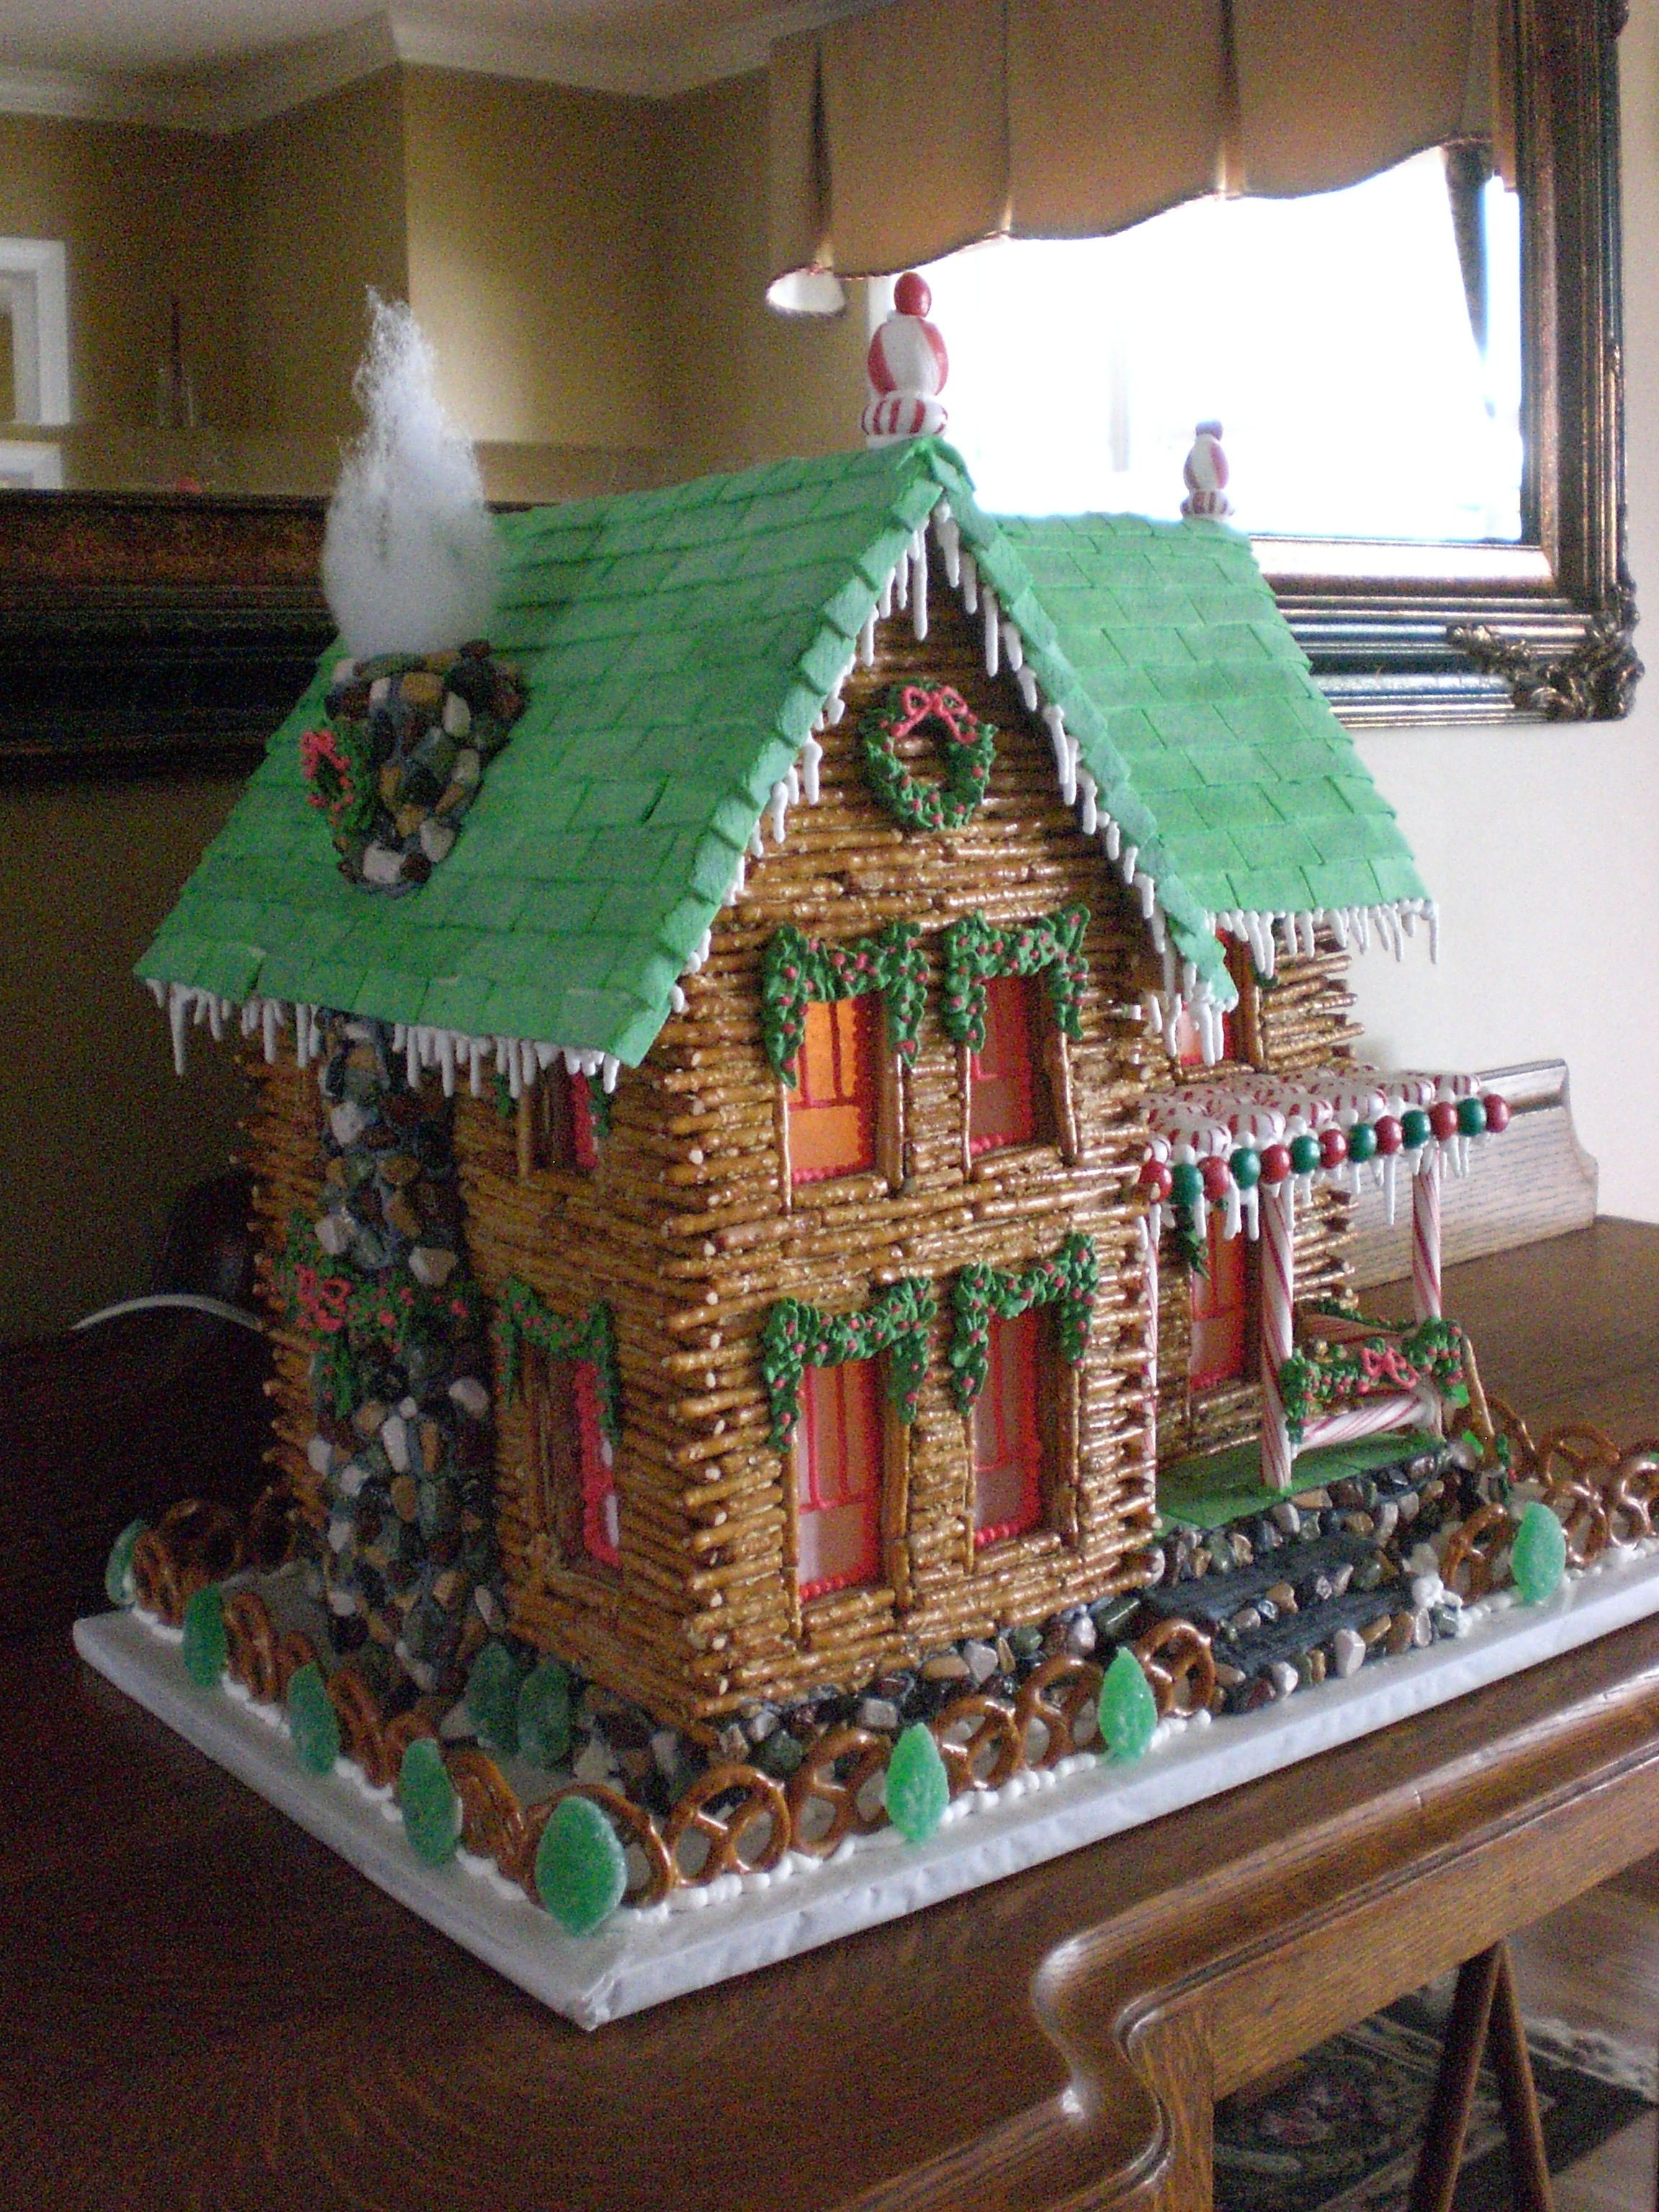 log cabin gingerbread with chimney. Gingerbread house